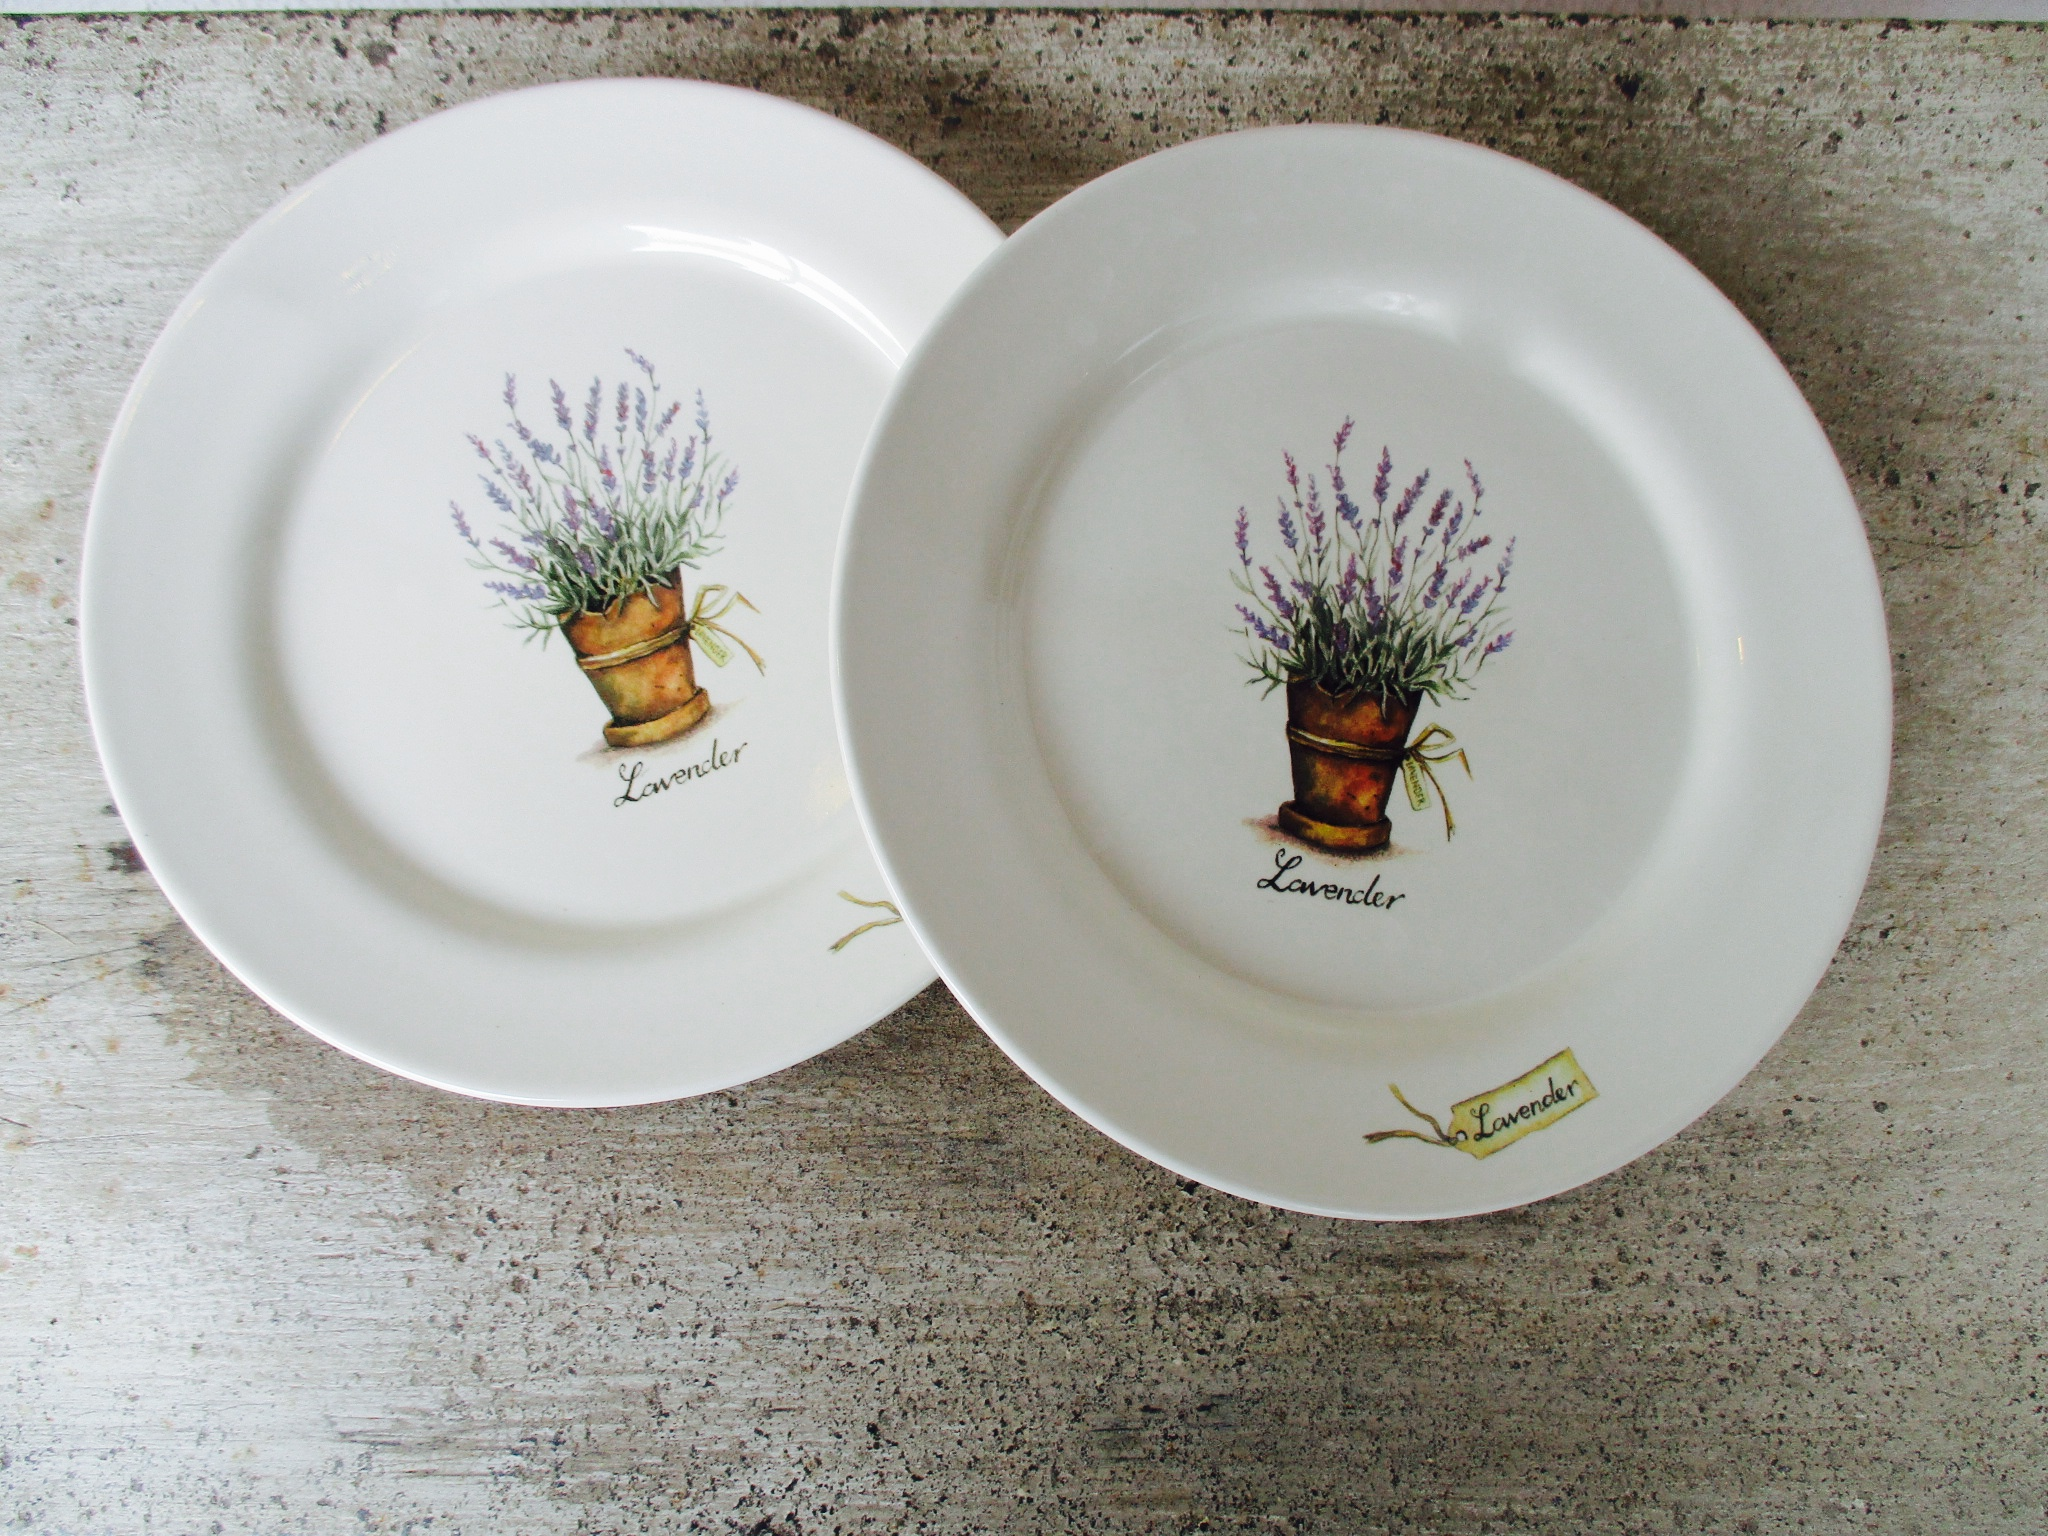 Netherlands Lavender Plates a Pair Country French Plate  : netherlands lavender plates a pair country french plate set 4011aspectfitampwidth640ampheight640 from www.chairish.com size 640 x 640 jpeg 52kB